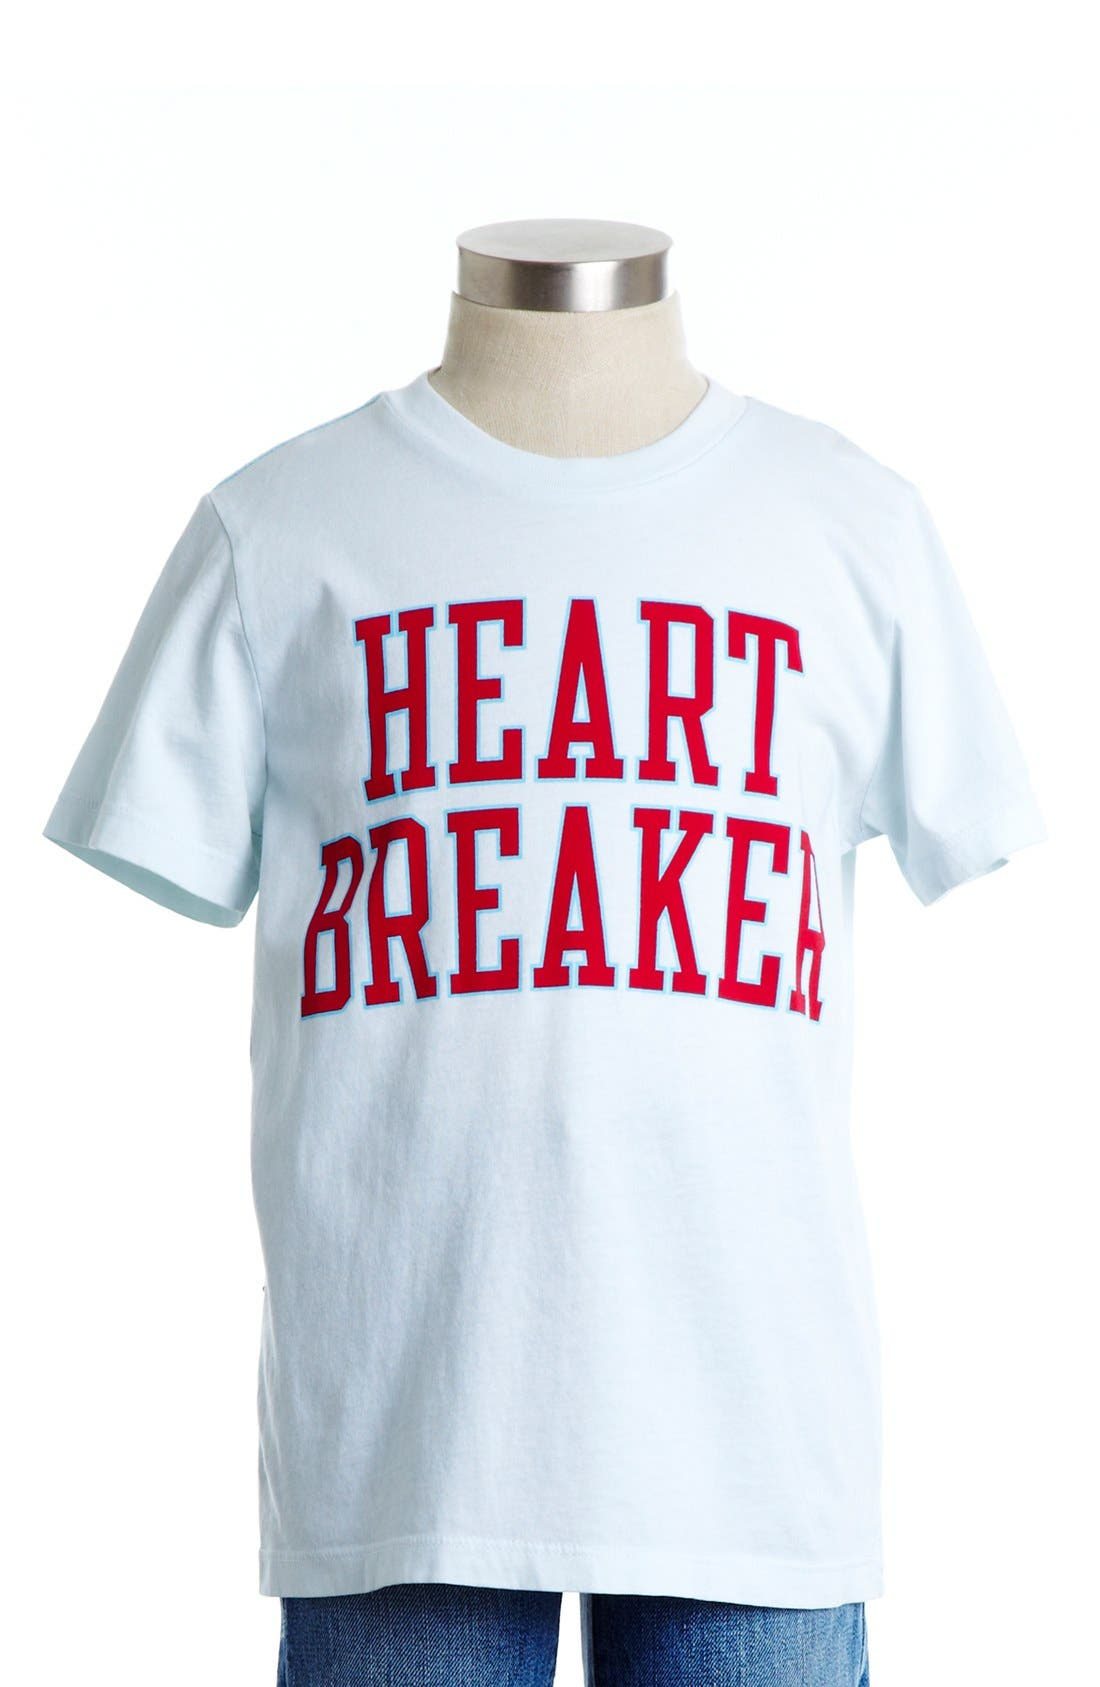 Main Image - Peek 'Heart Breaker' Graphic T-Shirt (Toddler Boys, Little Boys & Big Boys)